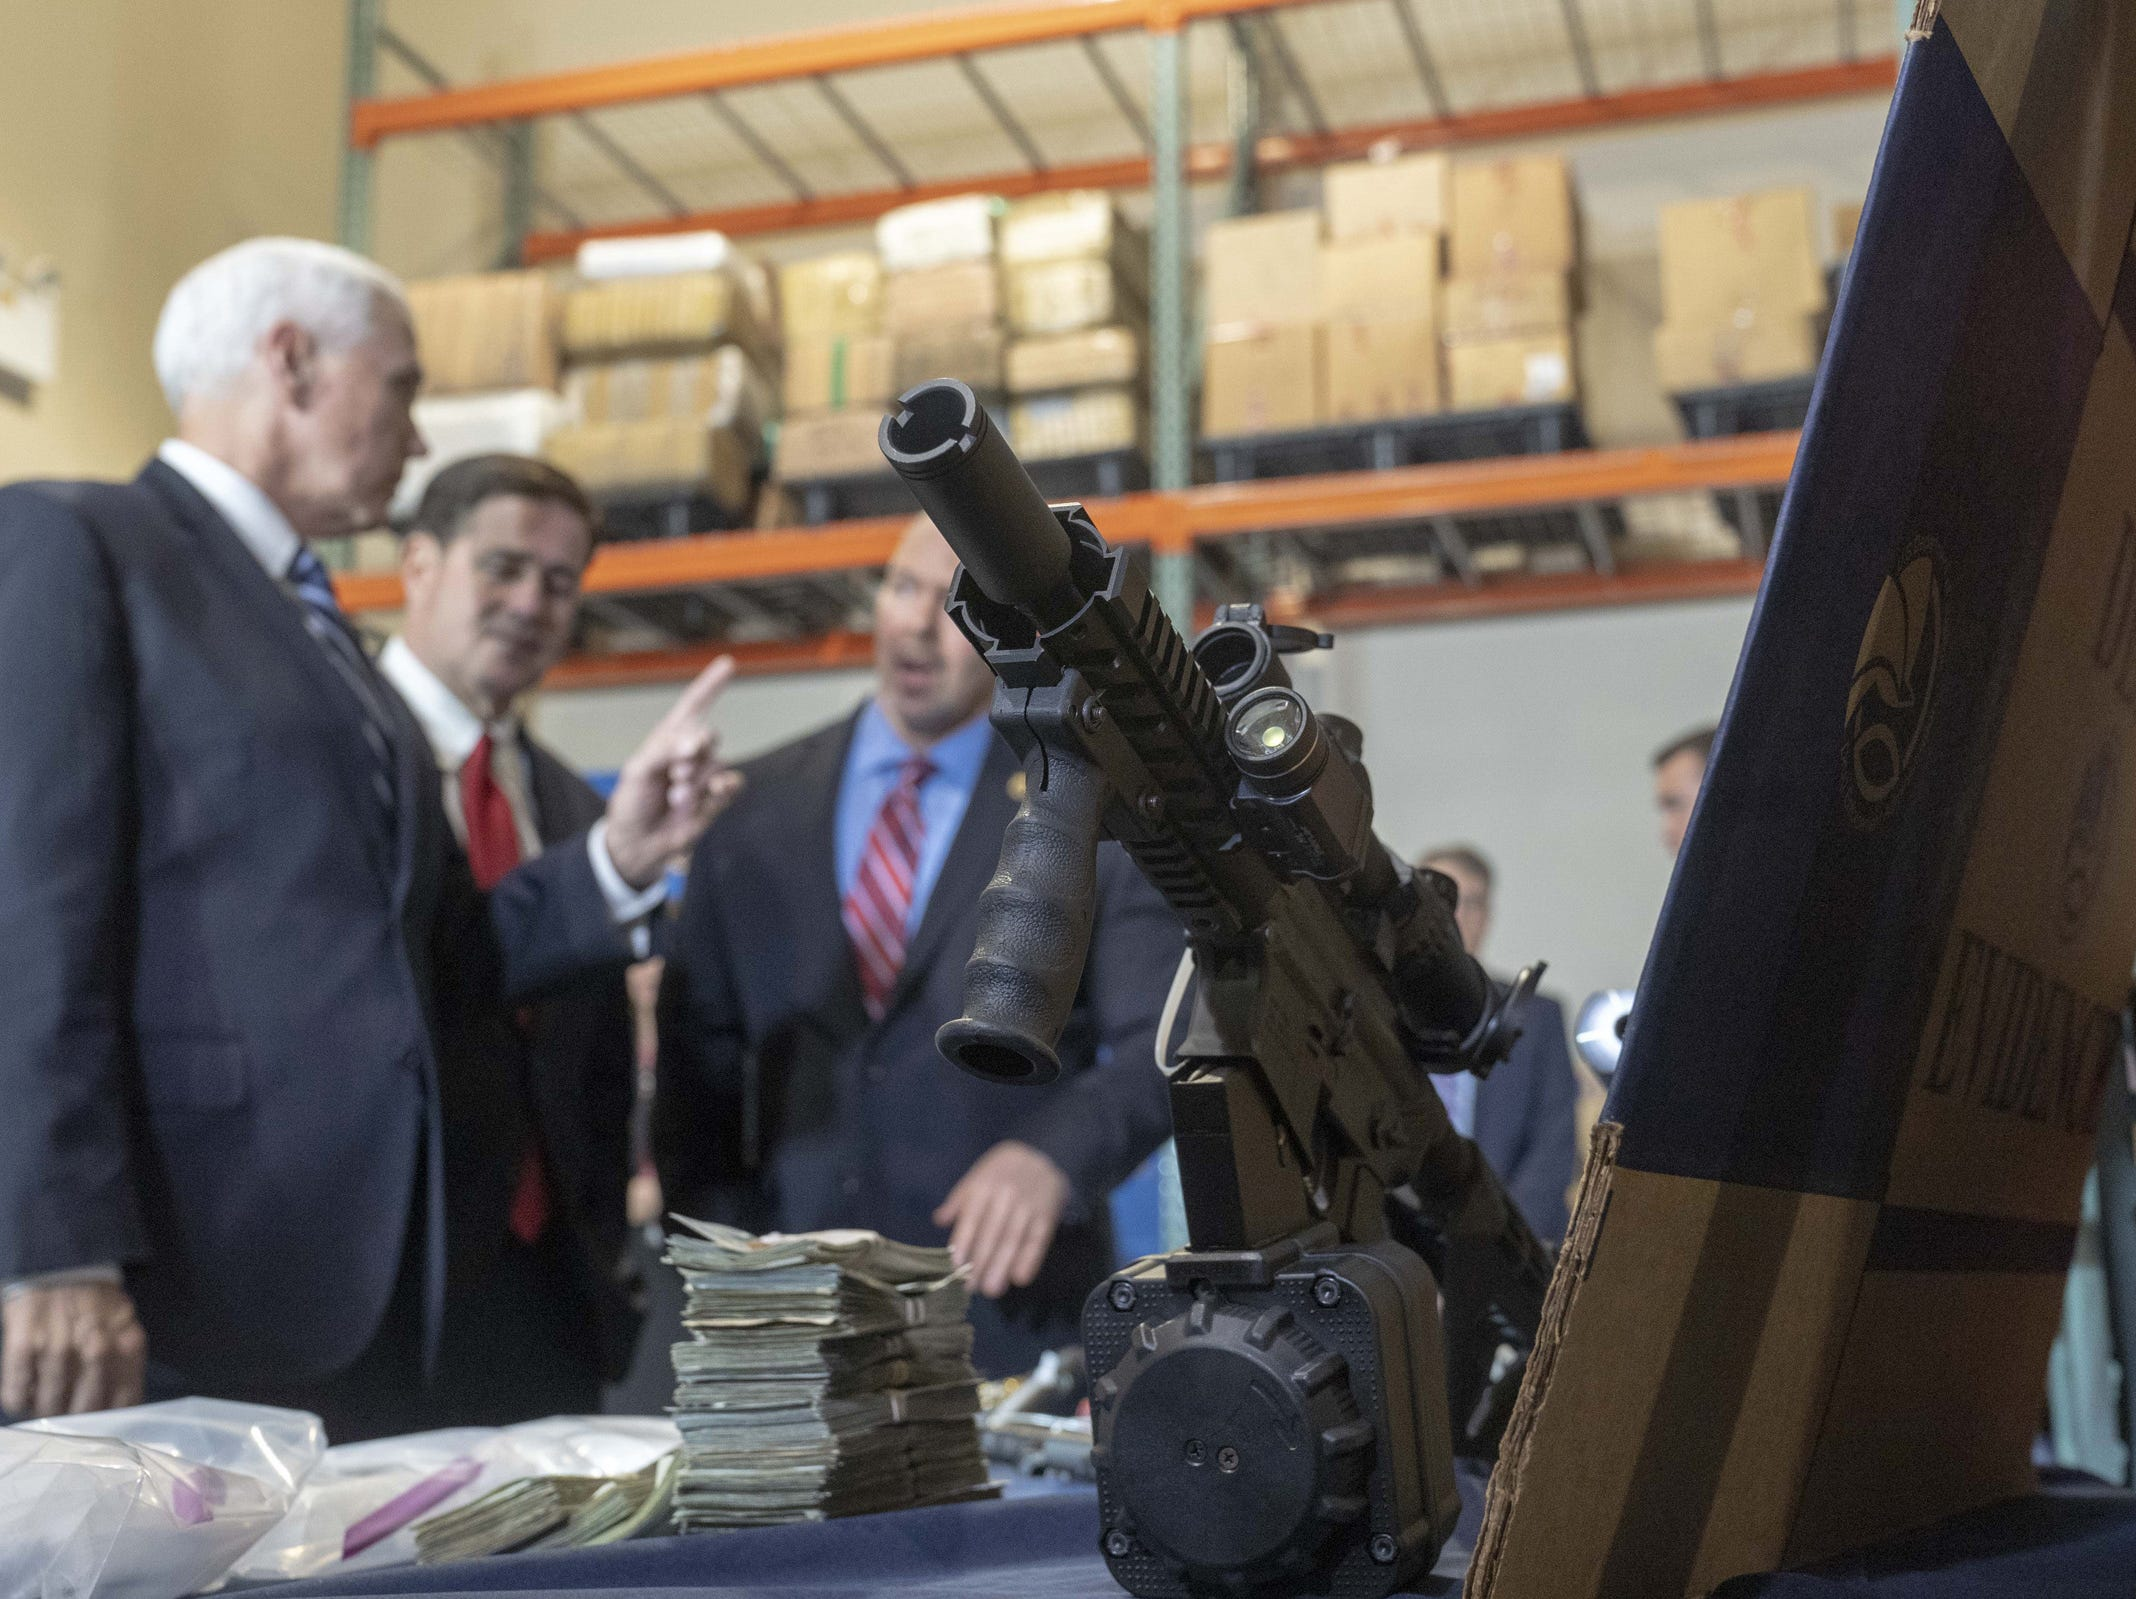 Vice President Mike Pence and Gov. Doug Ducey see stored drugs, weapons and cash during a tour of a U.S. Drug Enforcement Administration facility in the Phoenix area on March 5, 2019.